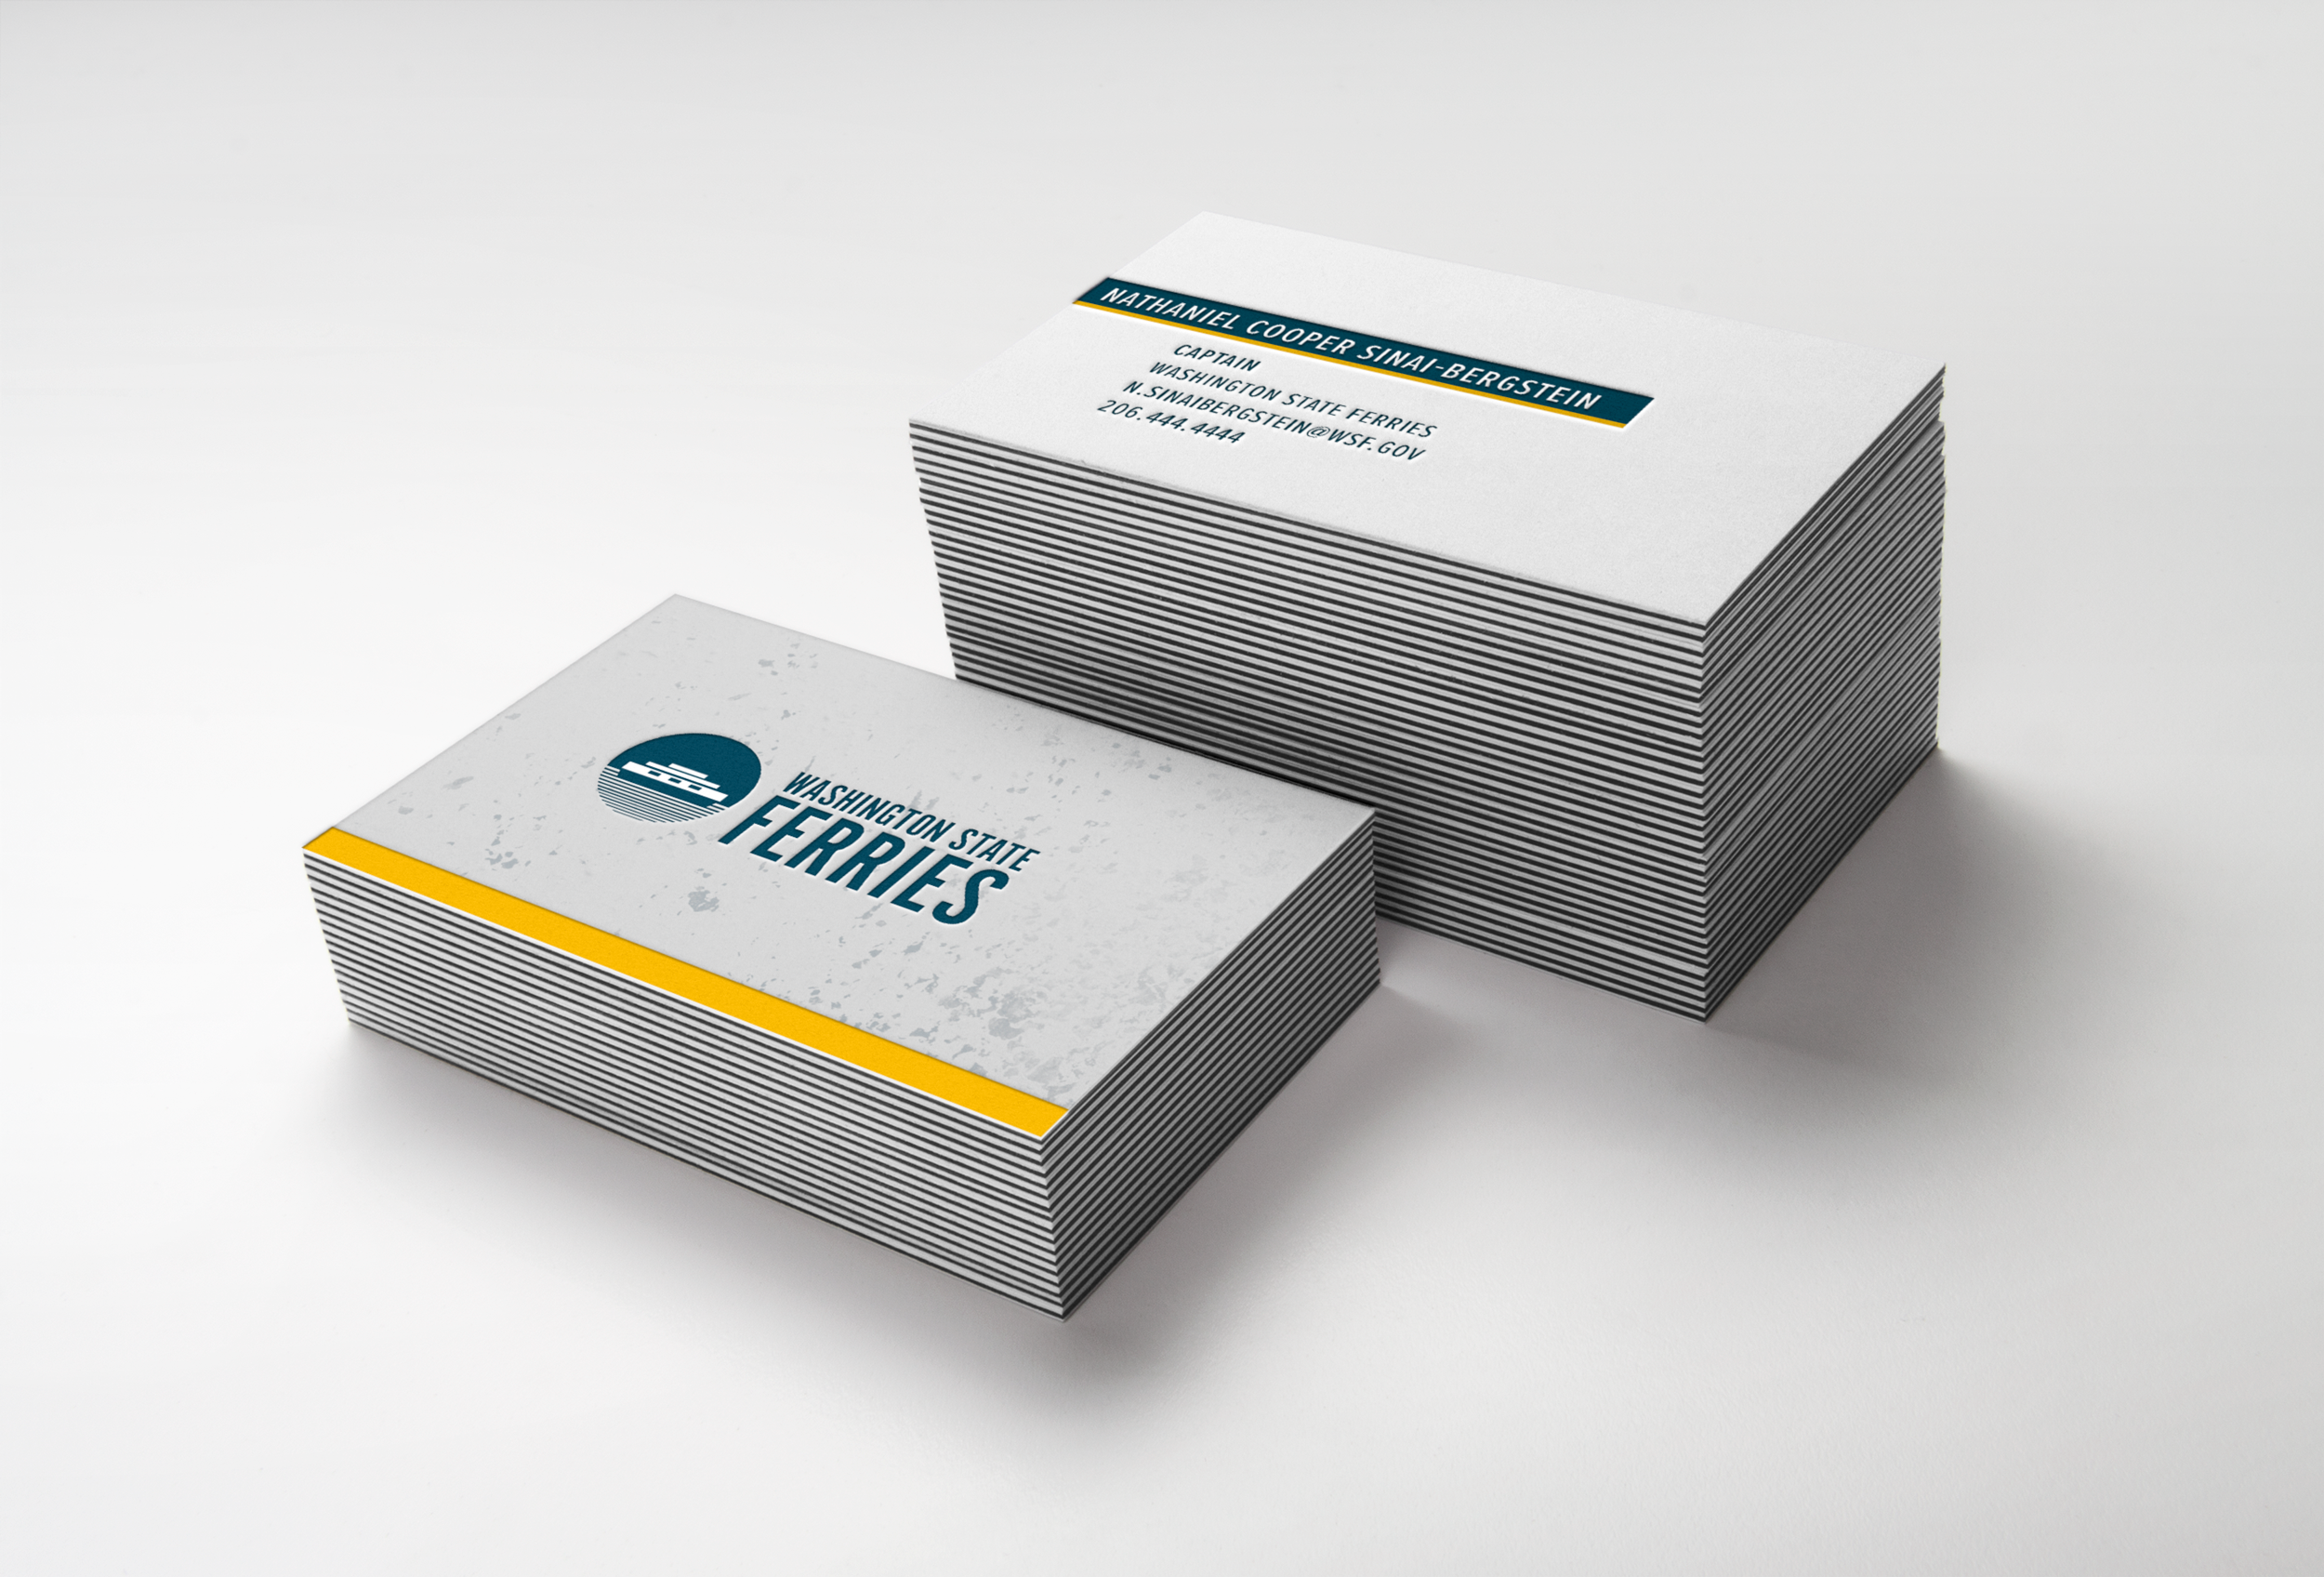 Business cards employ the subtle chipped white metal background and strong brand colors.